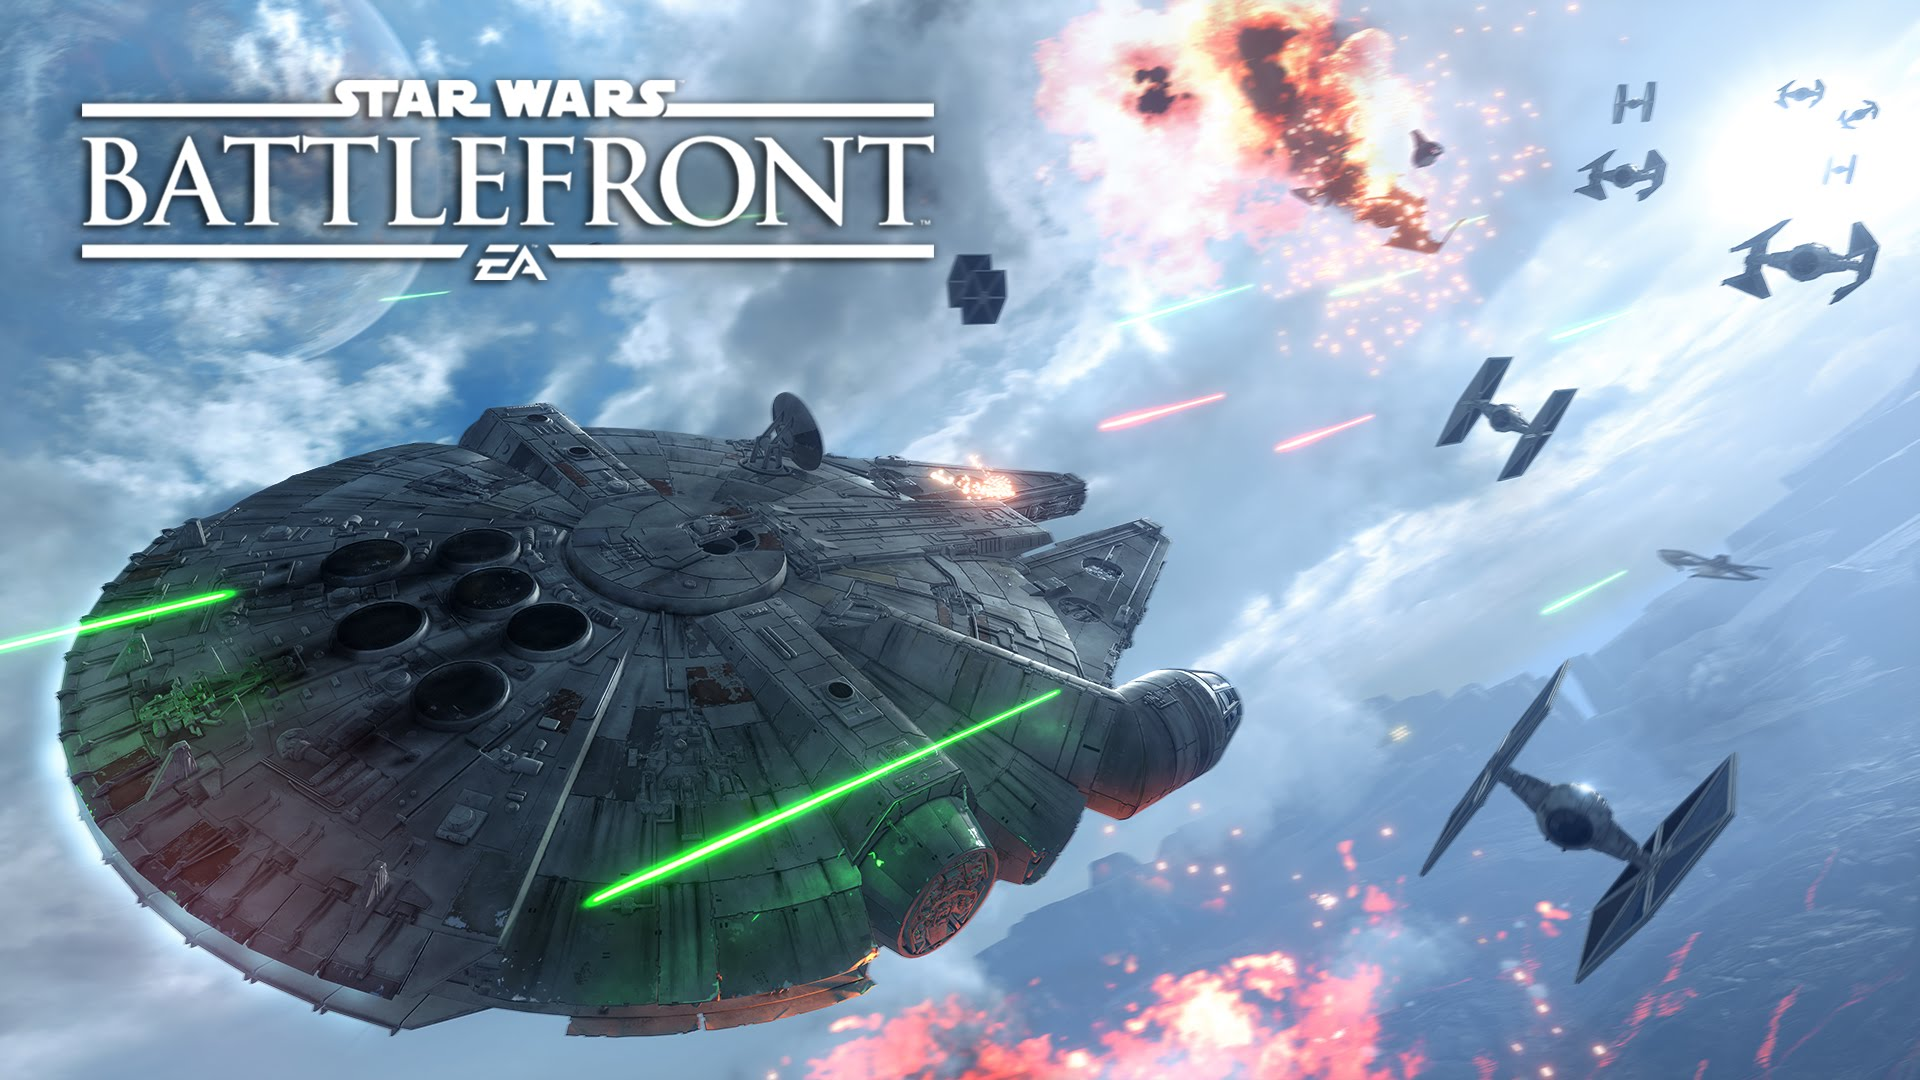 Star Wars: Battlefront + SECRET + GUARANTEE + 2BONUS